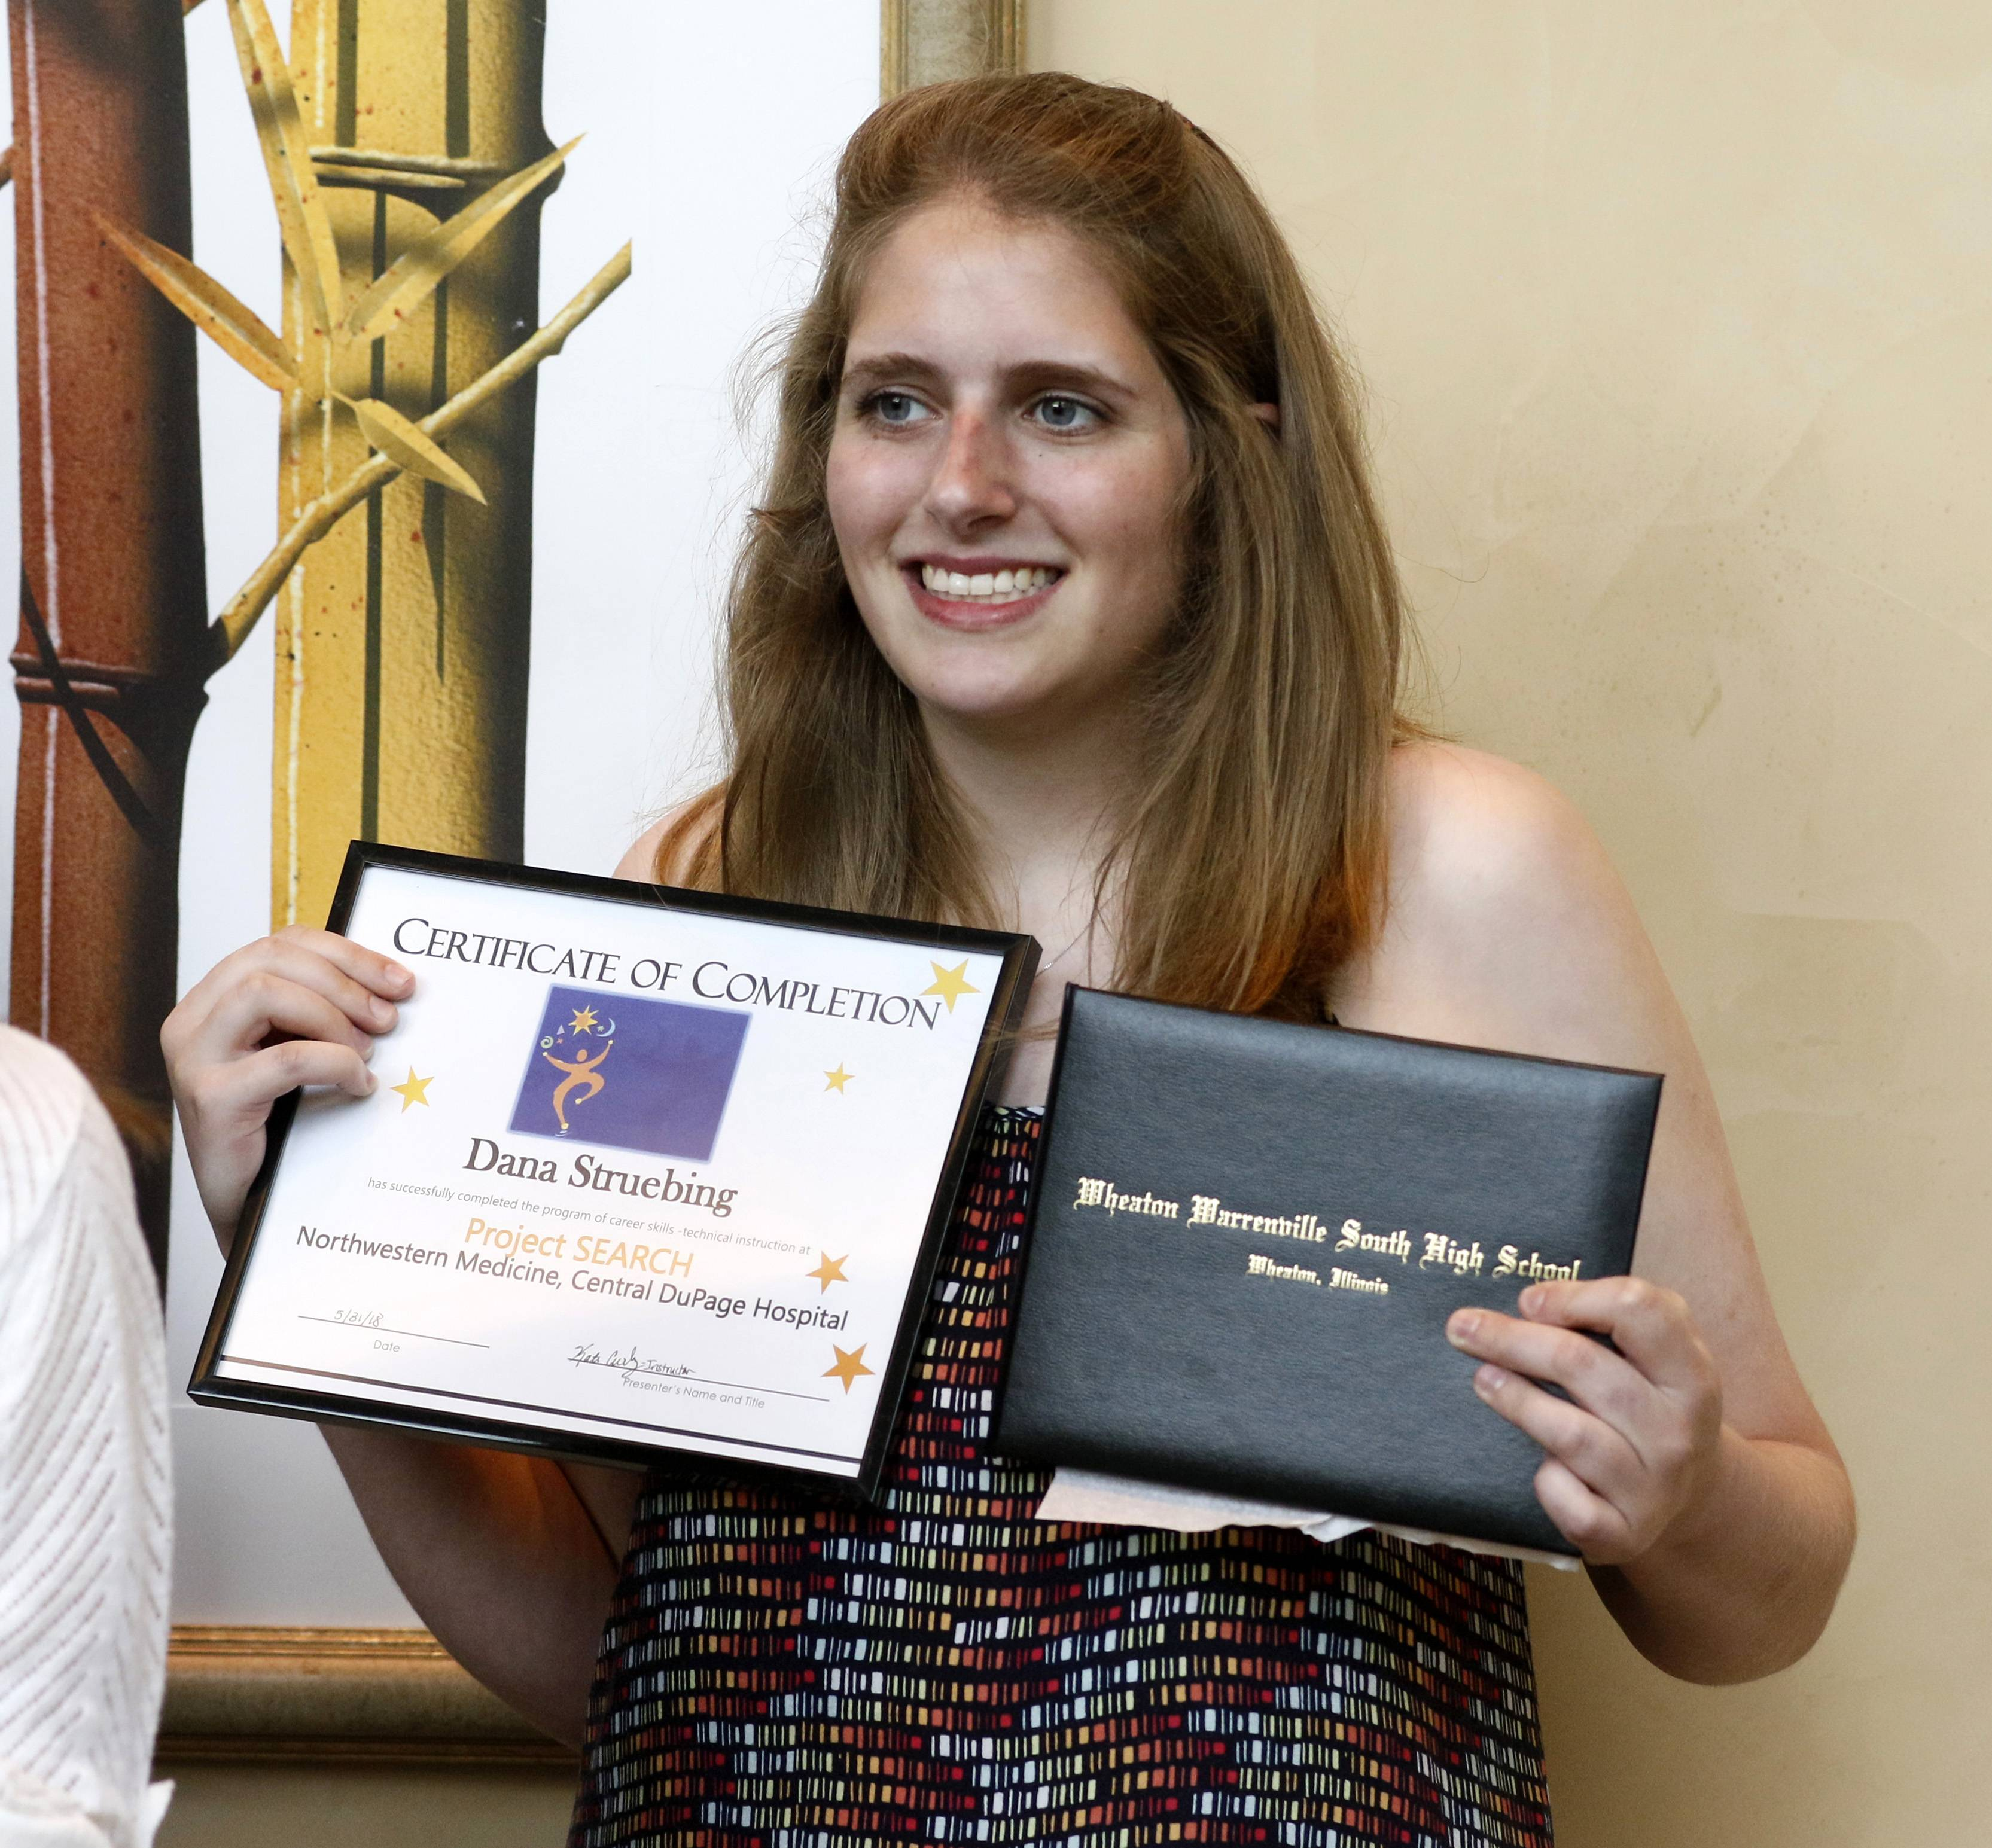 Dana Struebing shows off her Wheaton Warrenville South High School diploma and her certificate of completion after graduating from the Project SEARCH program at Northwestern Medicine Central DuPage Hospital in Winfield. The job training program aims to help students with special needs transition into the workforce.